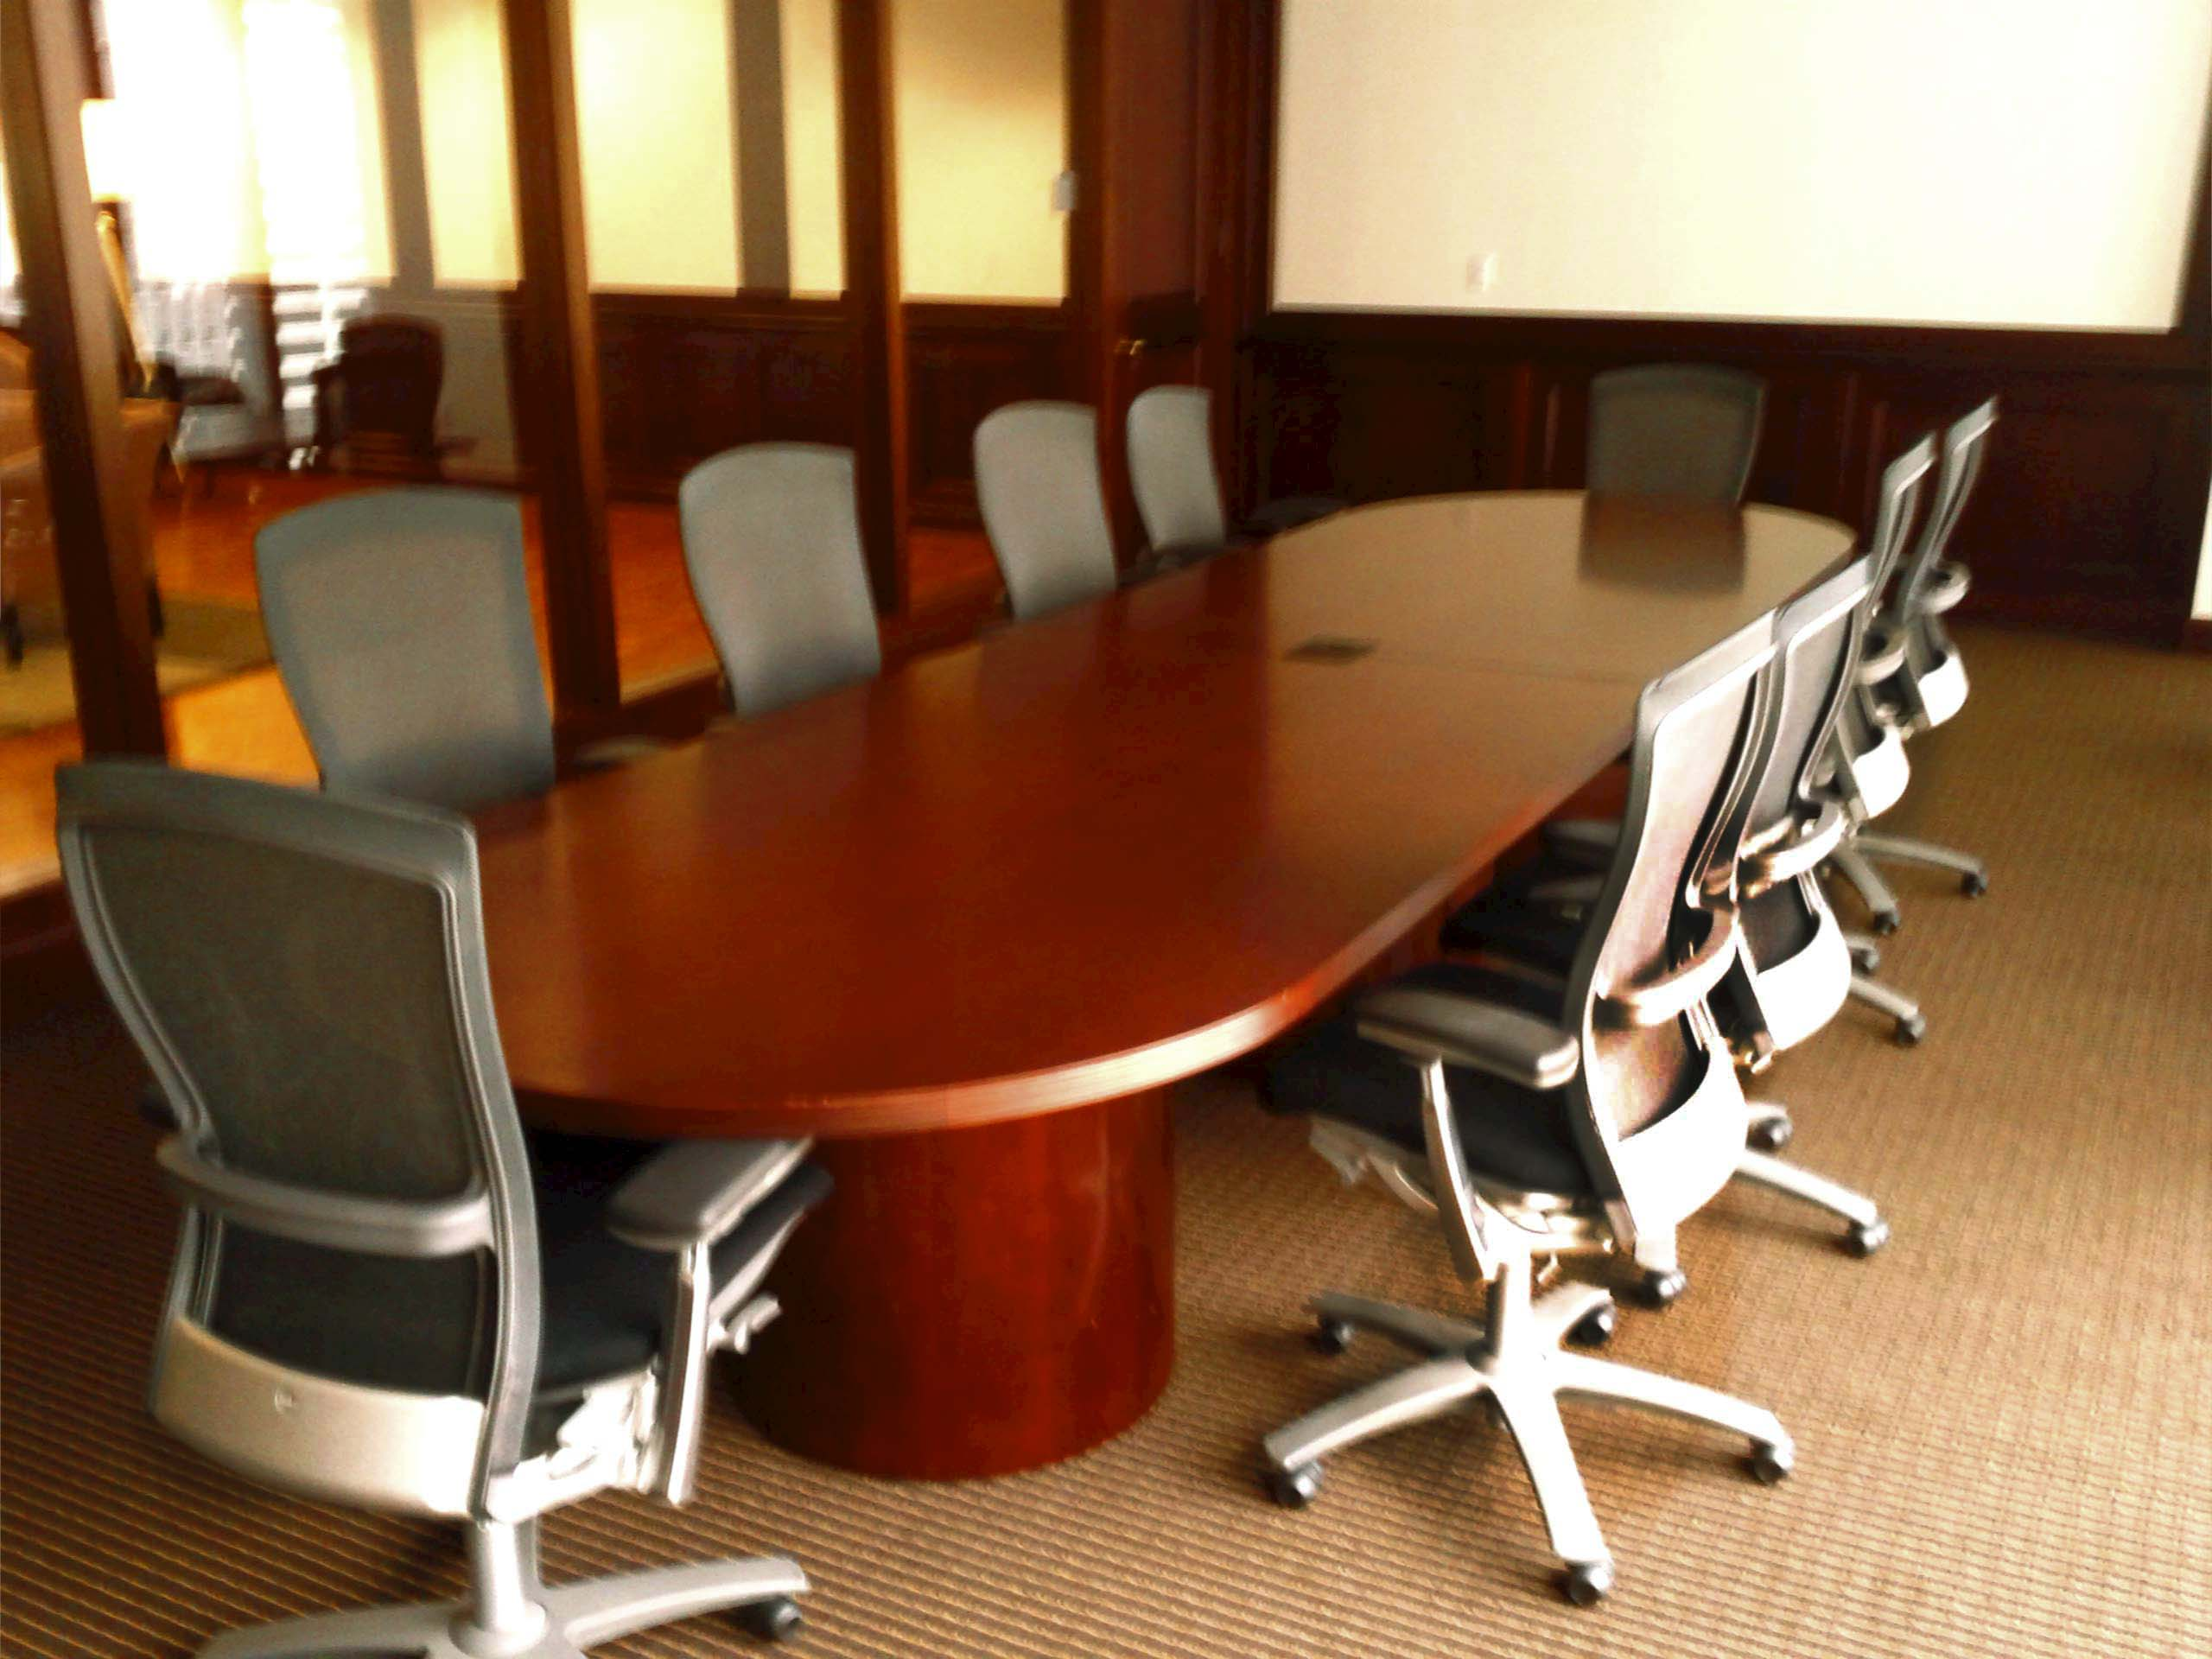 SAVVI Commercial And Office Furniture Affordable And High Quality - 16 ft conference table